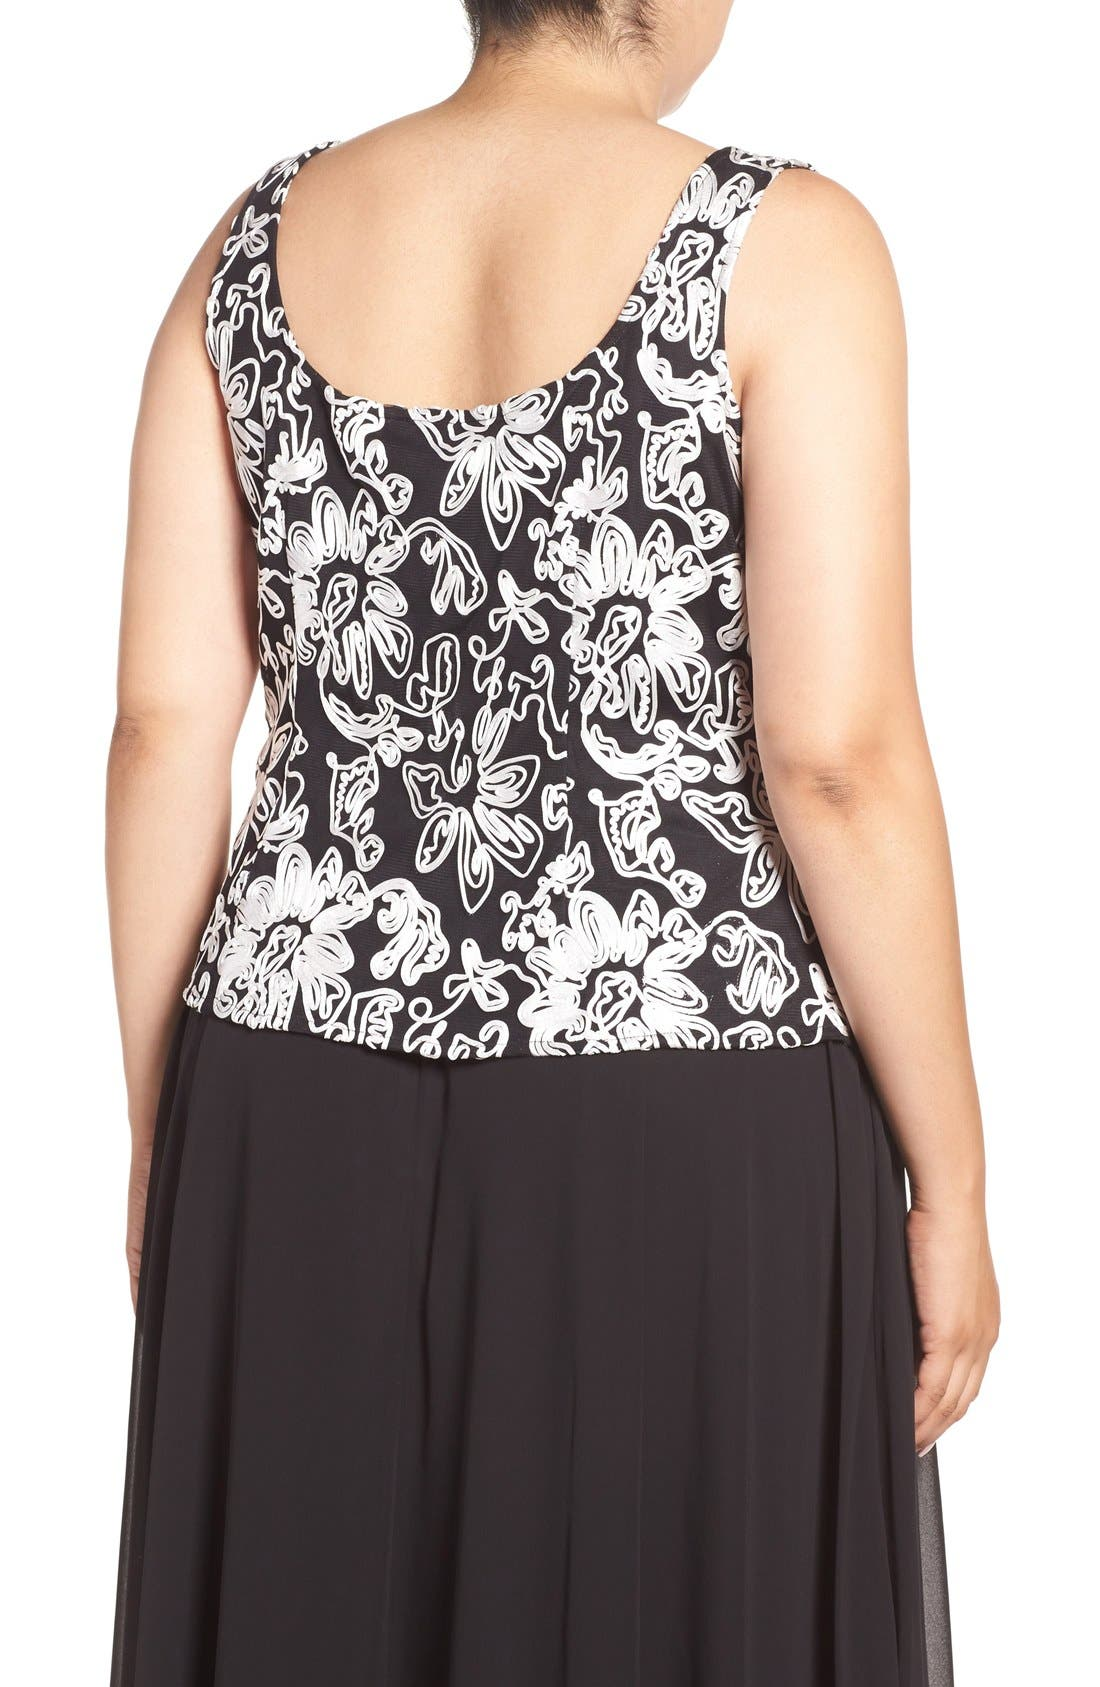 Embroidered Twinset,                             Alternate thumbnail 5, color,                             BLACK/ WHITE